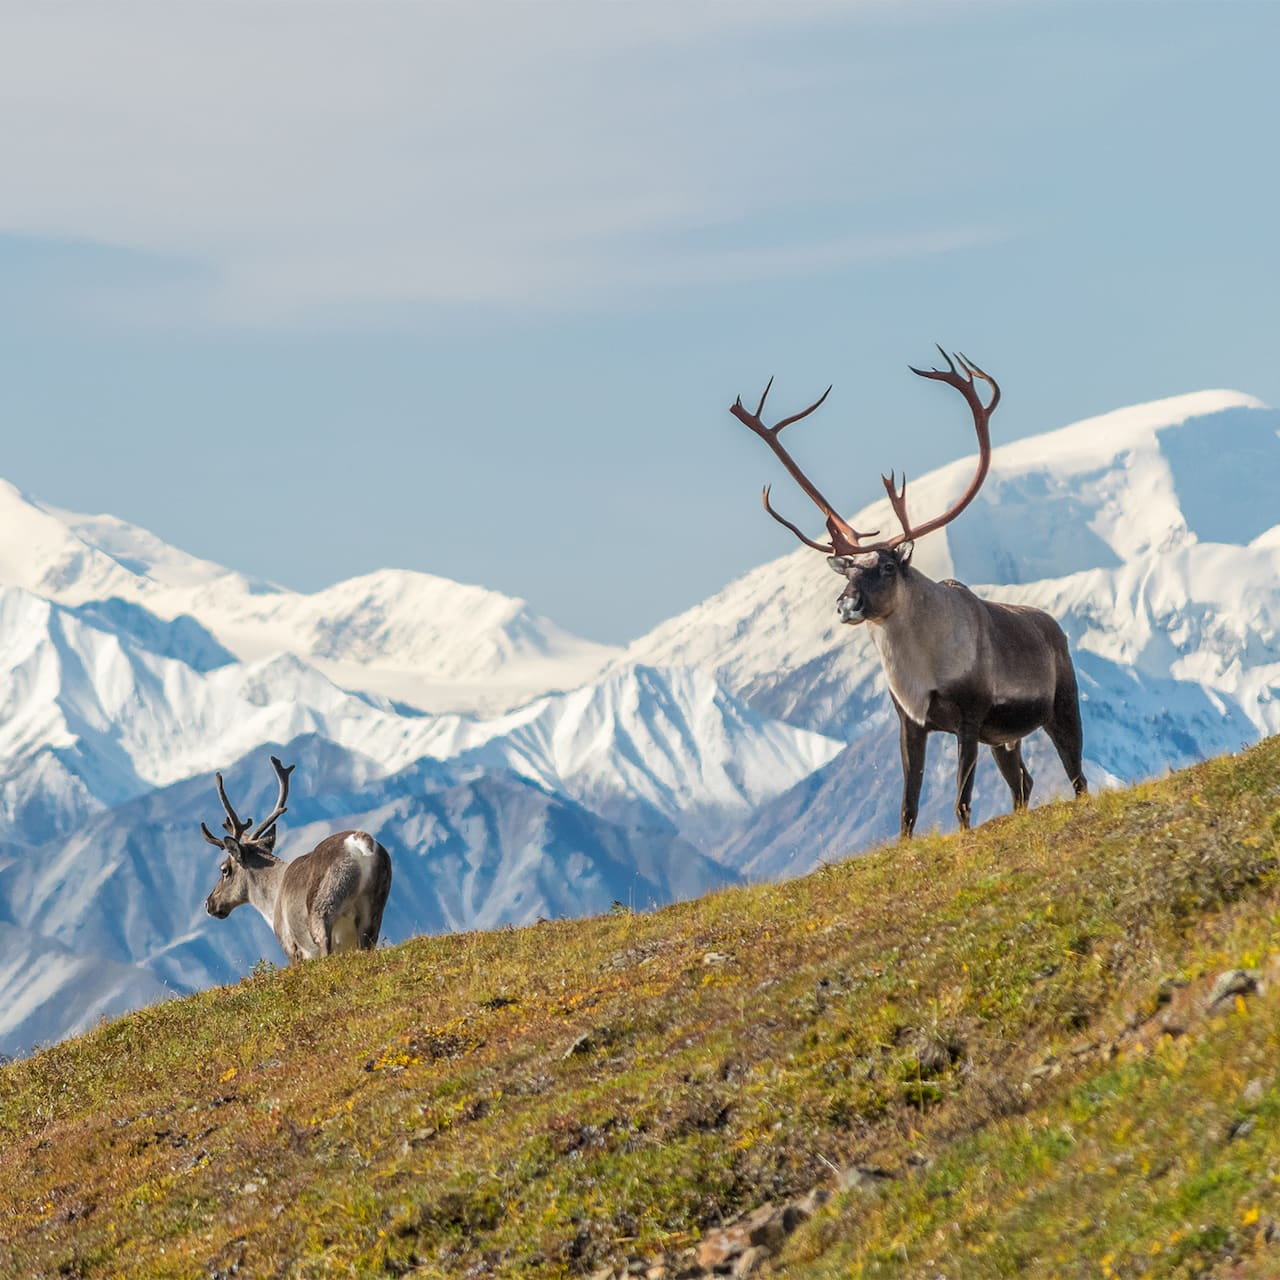 Two Alaskan caribou stand on a grassy hill near a snow-capped mountain range